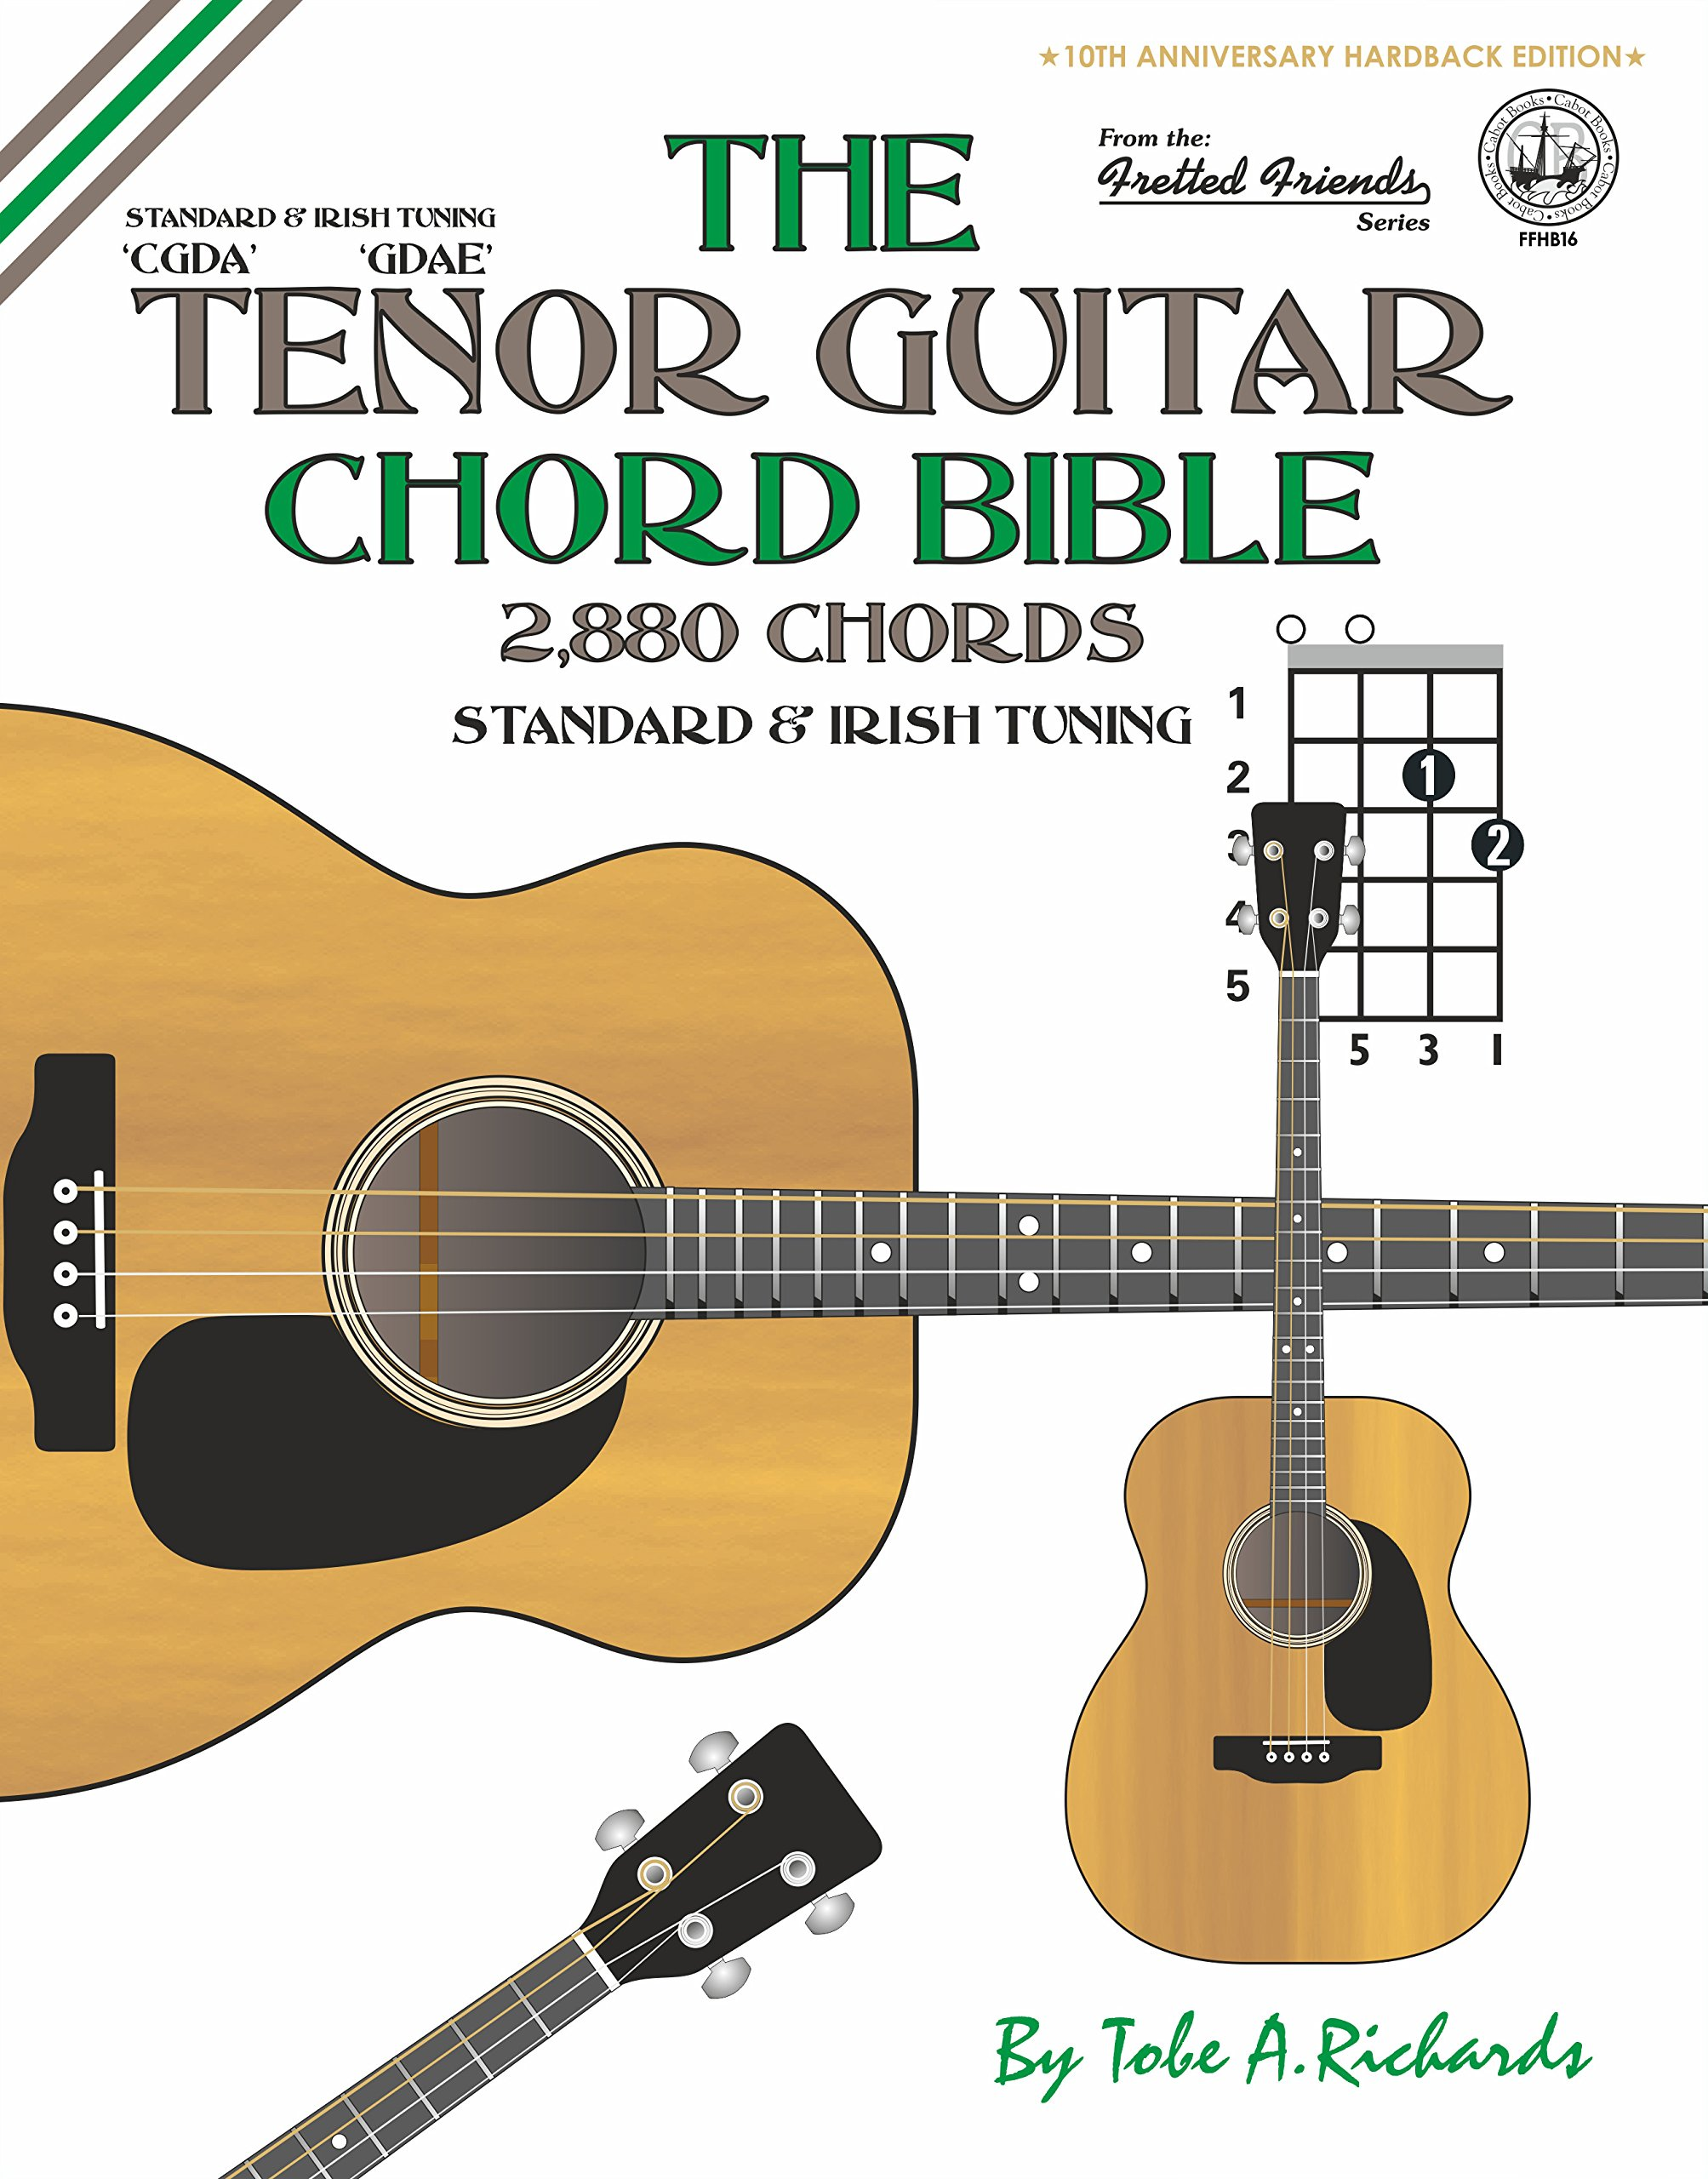 Amazon the tenor guitar chord bible standard and irish amazon the tenor guitar chord bible standard and irish tuning 2880 chords fretted friends series 9781906207687 tobe a richards books hexwebz Gallery